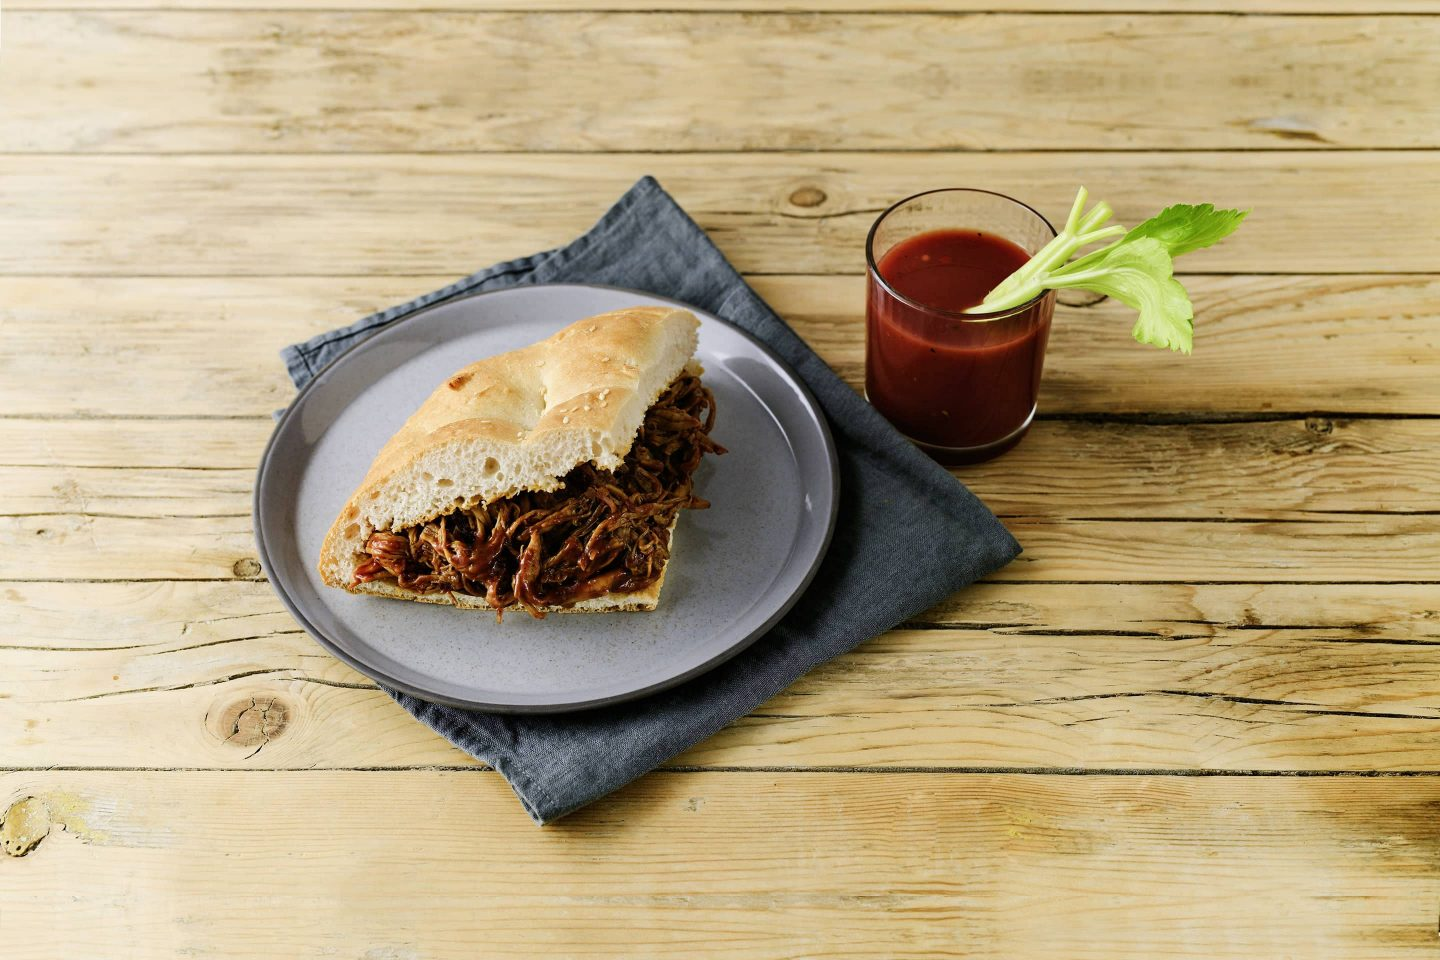 Grill-Smoked Pulled Pork im Fladenbrot mit Bloody mary